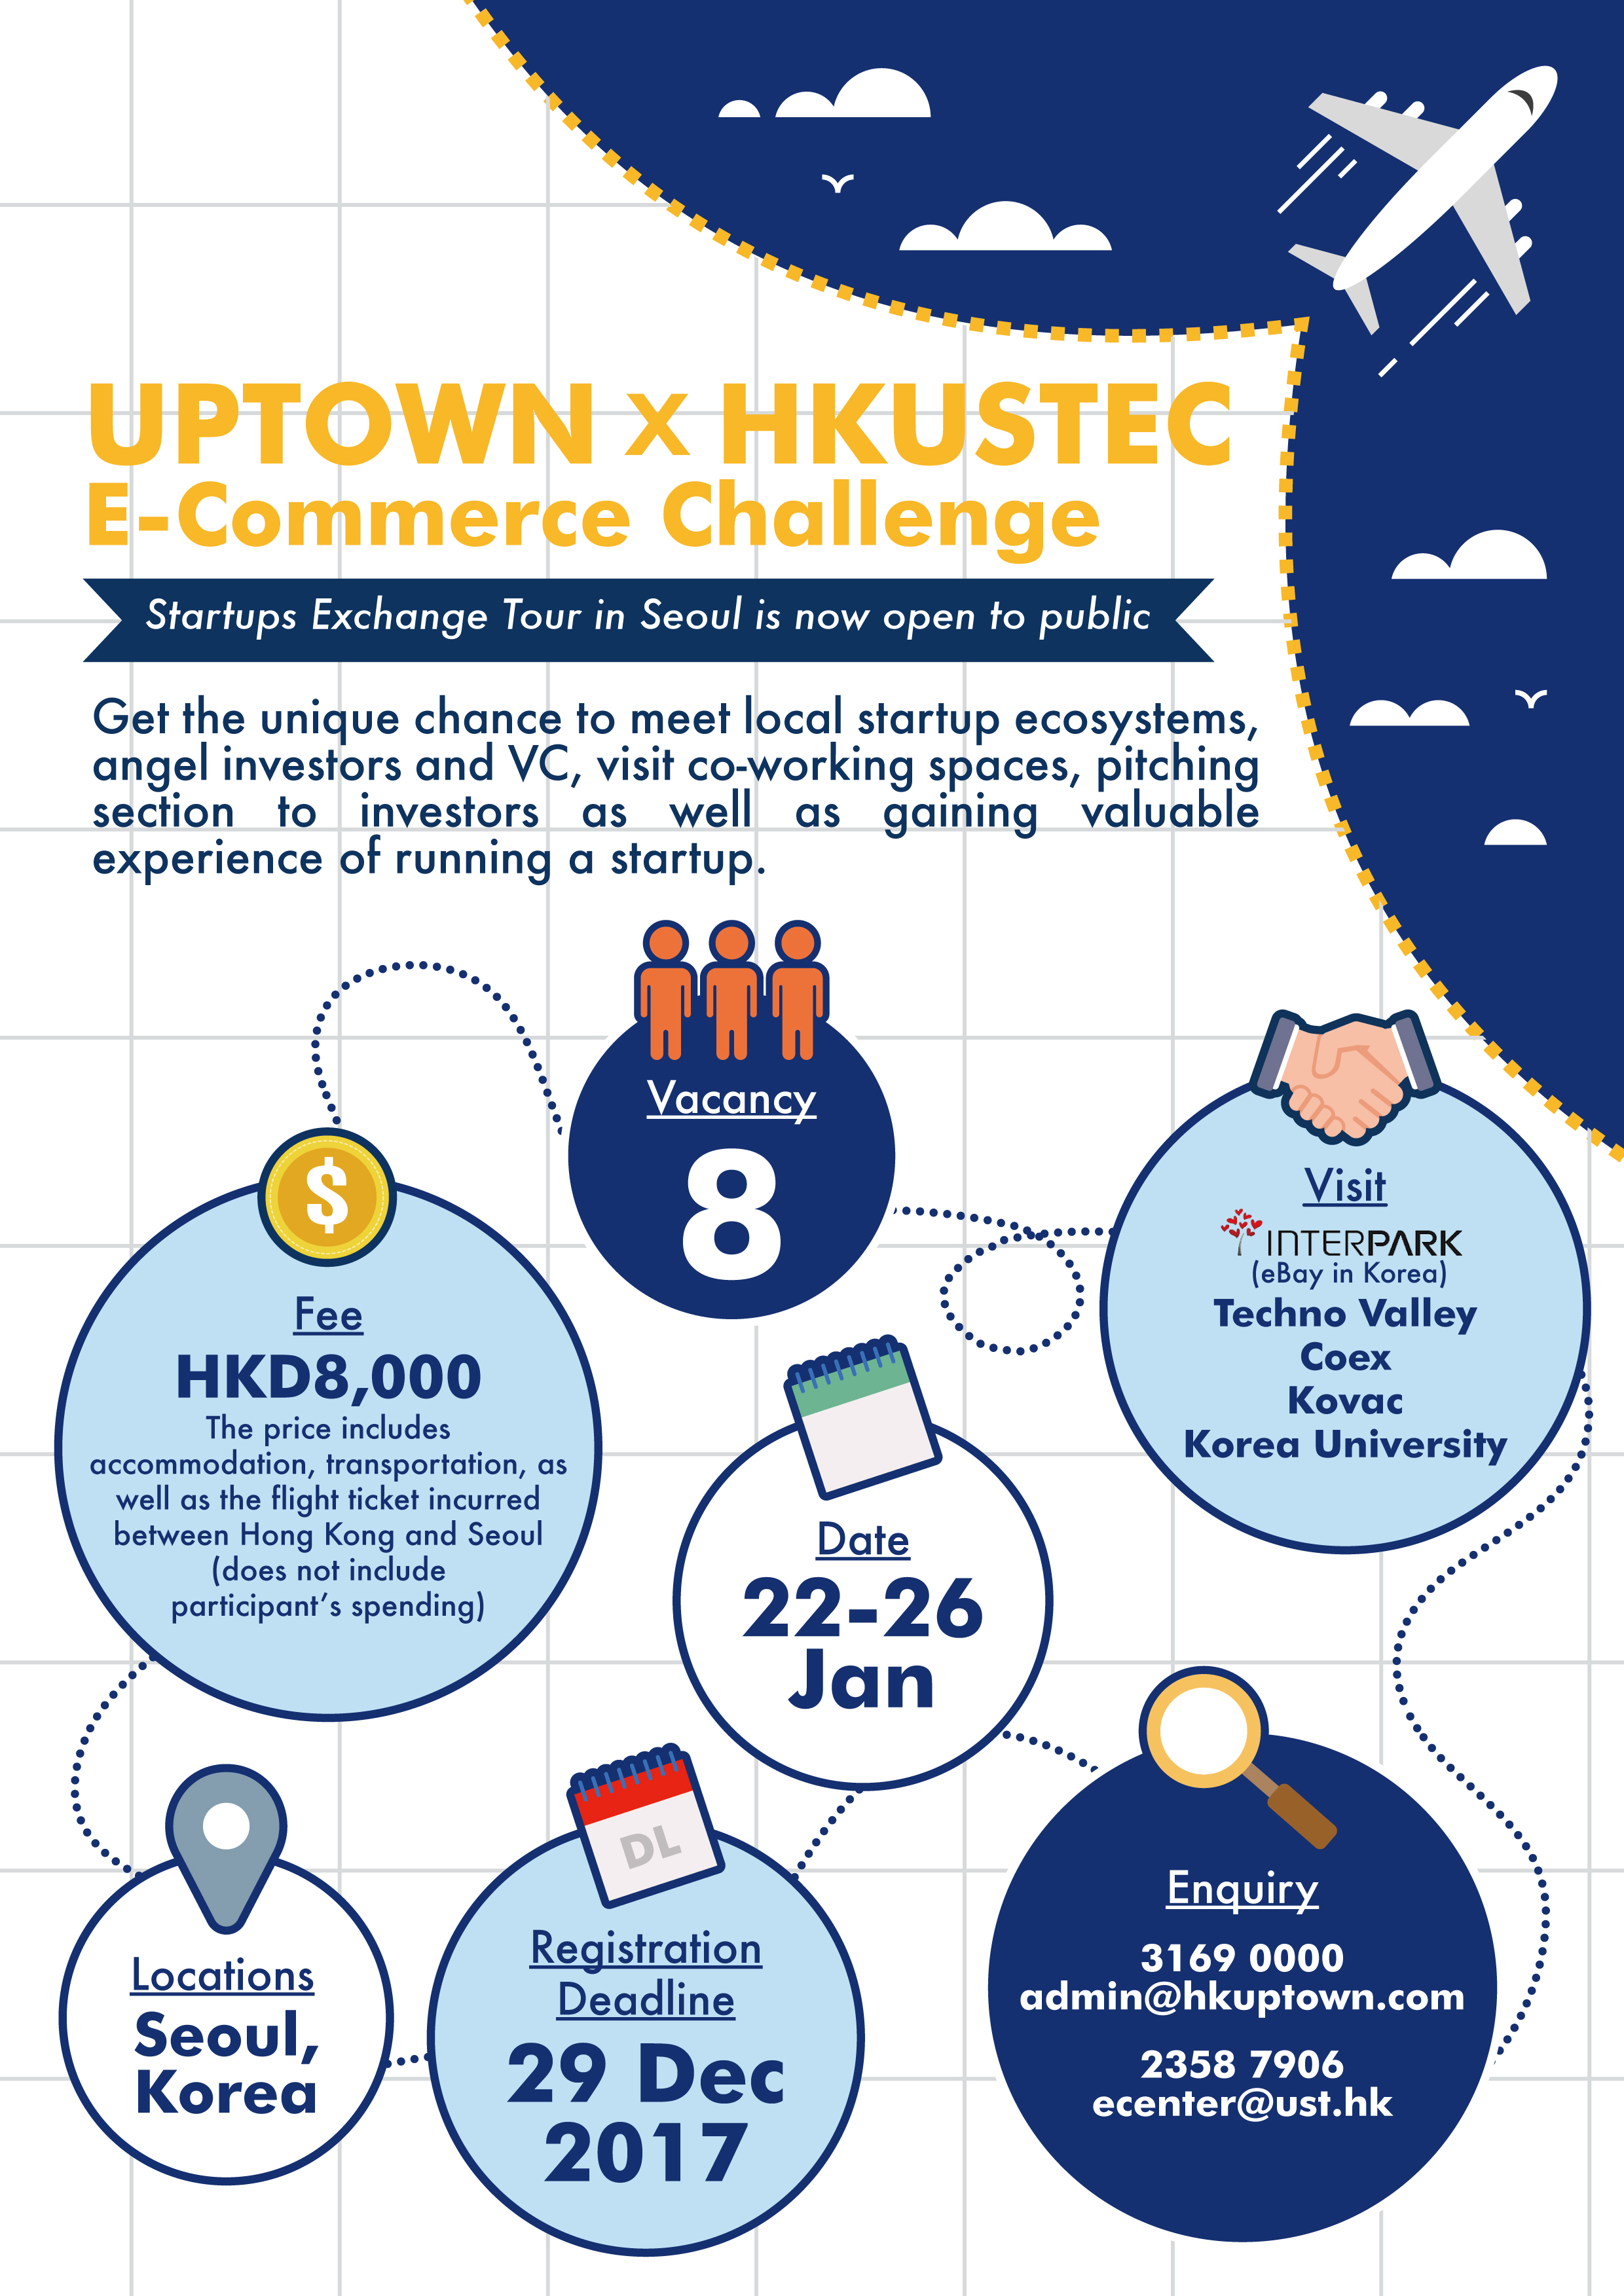 Uptown x HKUSTEC E-commerce Challenge Startups Exchange Tour in Seoul